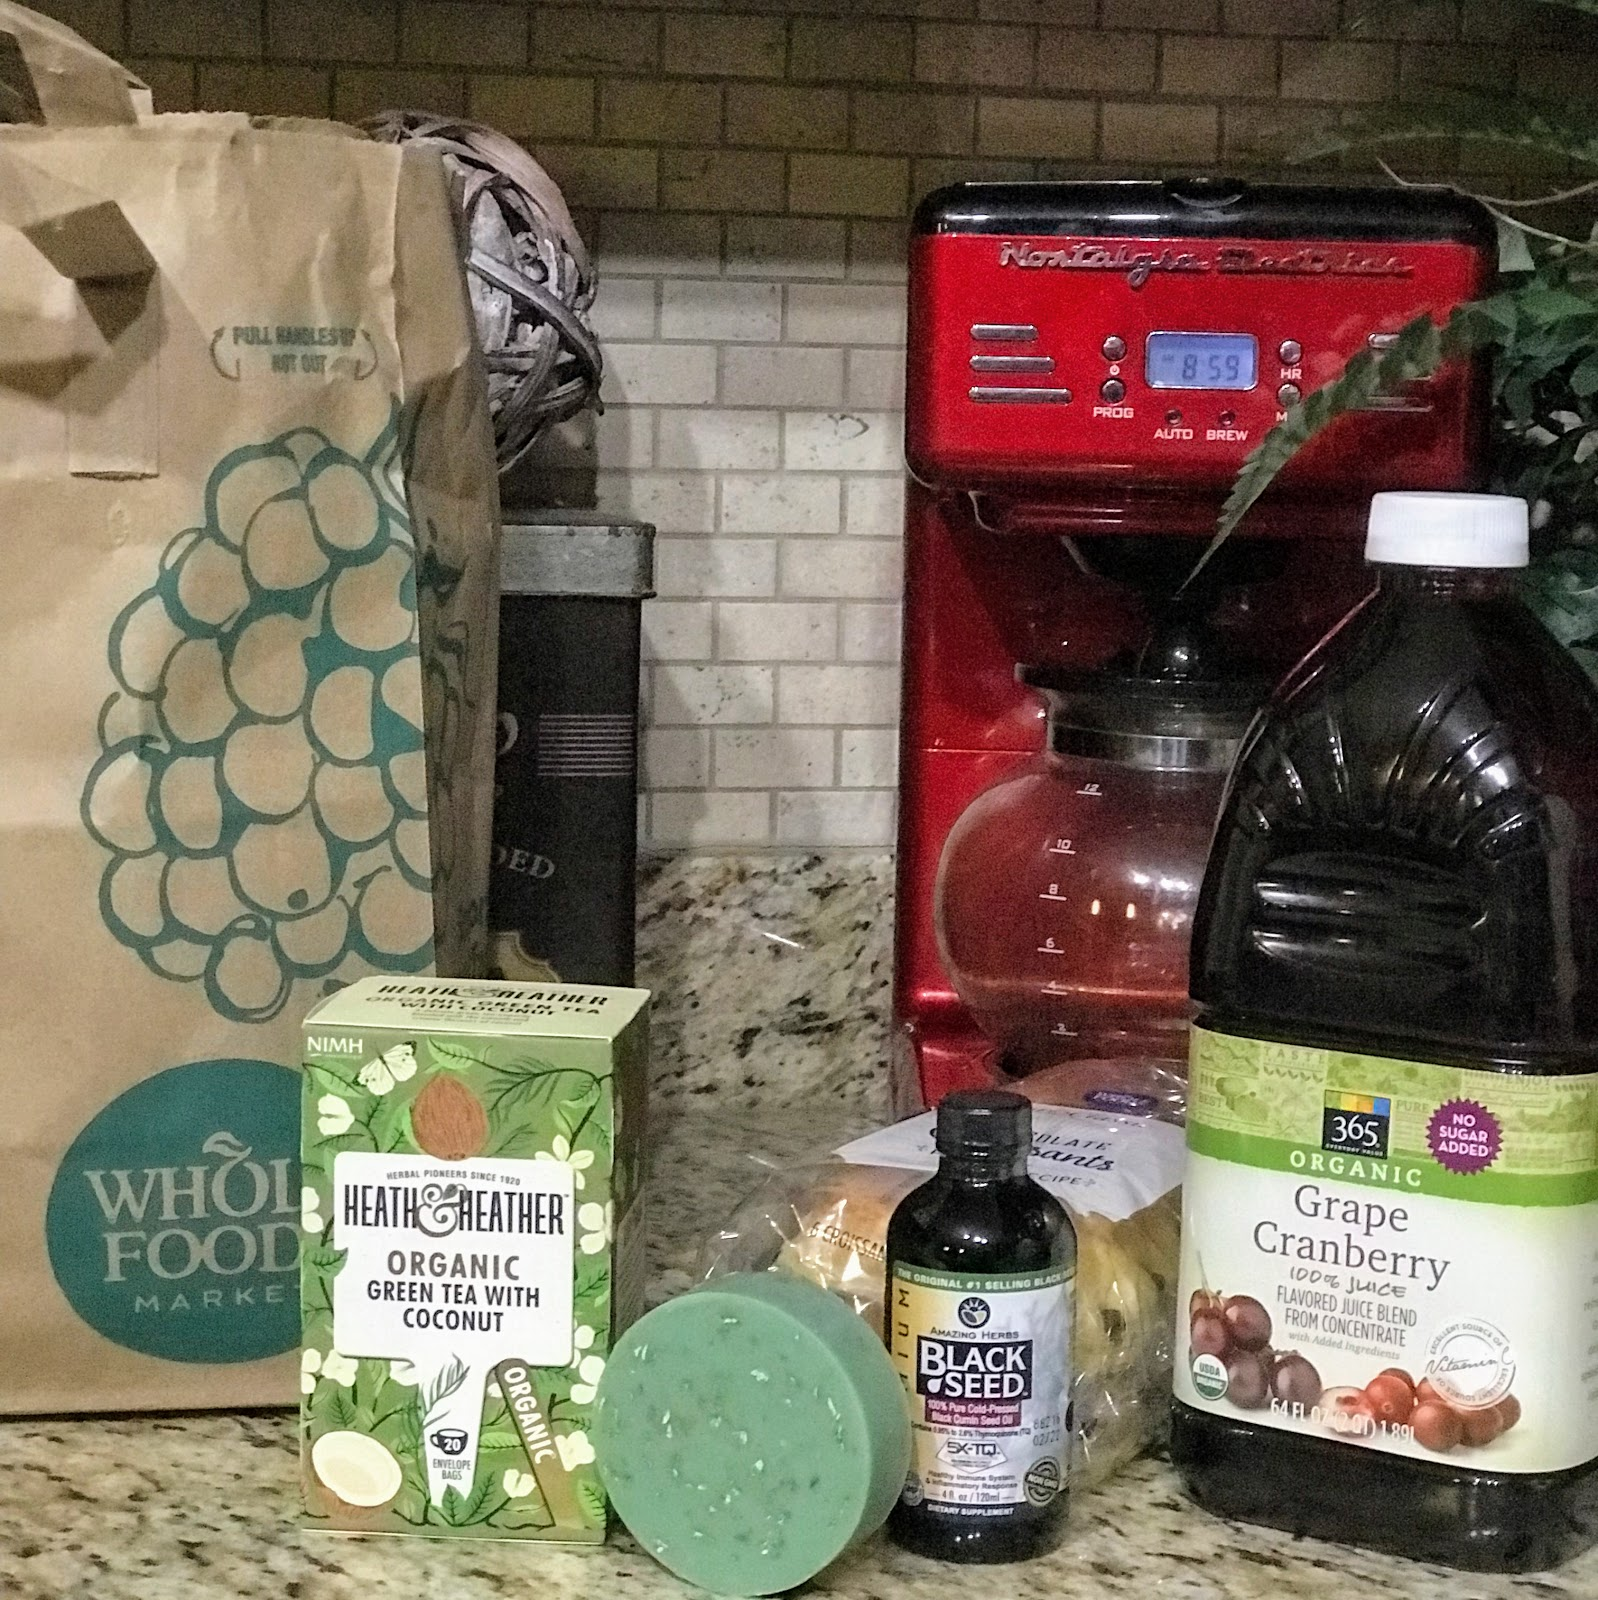 Image: All the items Tangie Bell bought from Whole Foods. She hauled on Bits and Babbles Blog: cranberry juice, black seed oil, soap, tea, bread